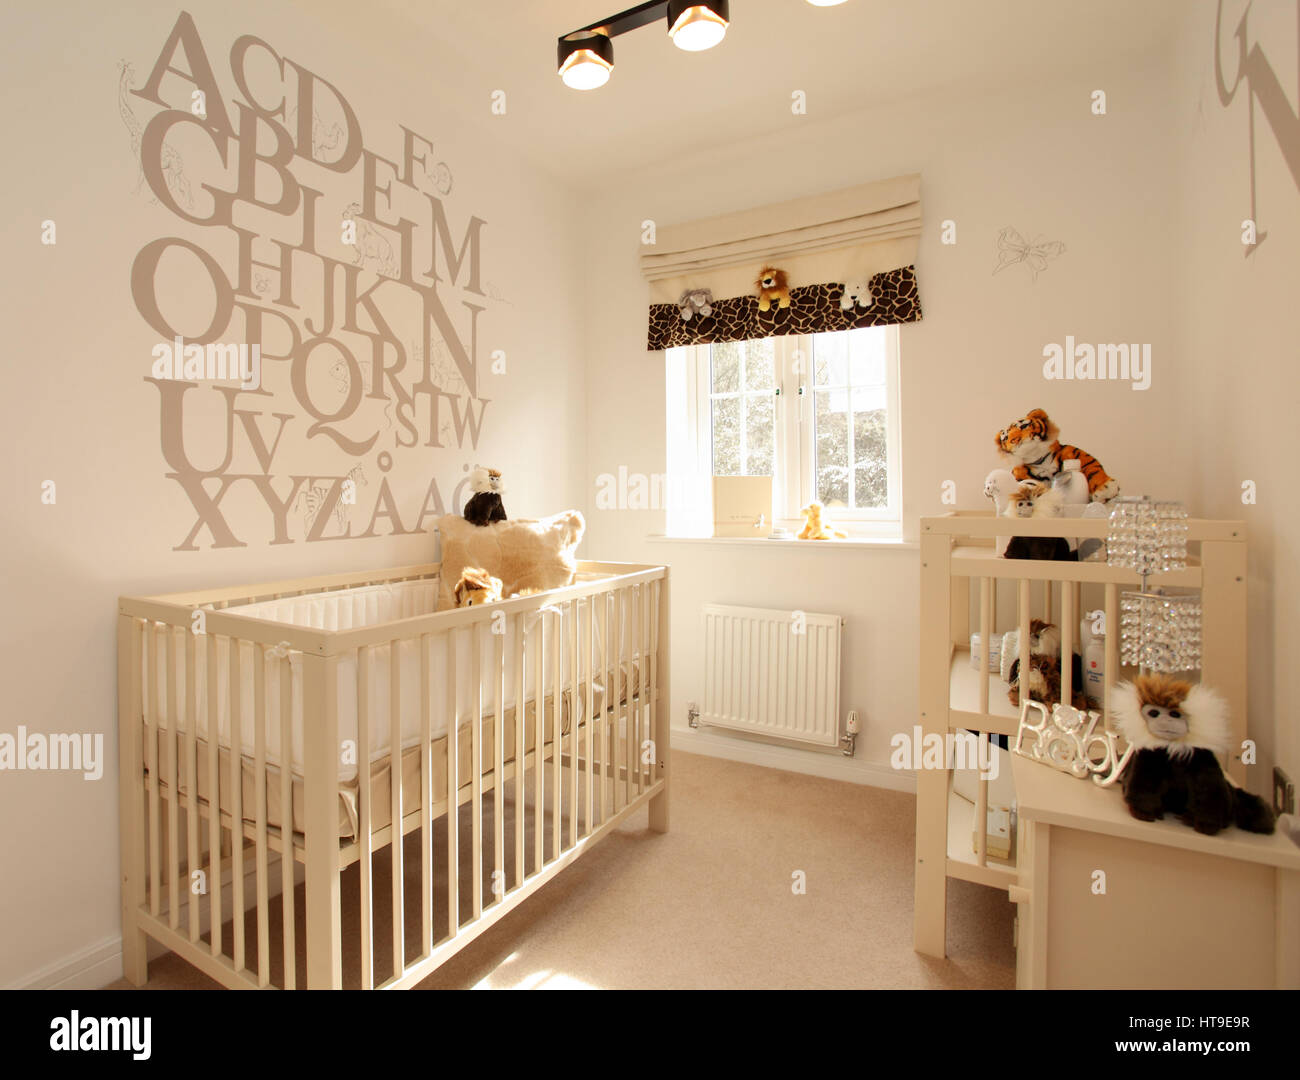 Home interior, childs nursery, decor, alphabet feature wall, cot, soft toys, baby, - Stock Image